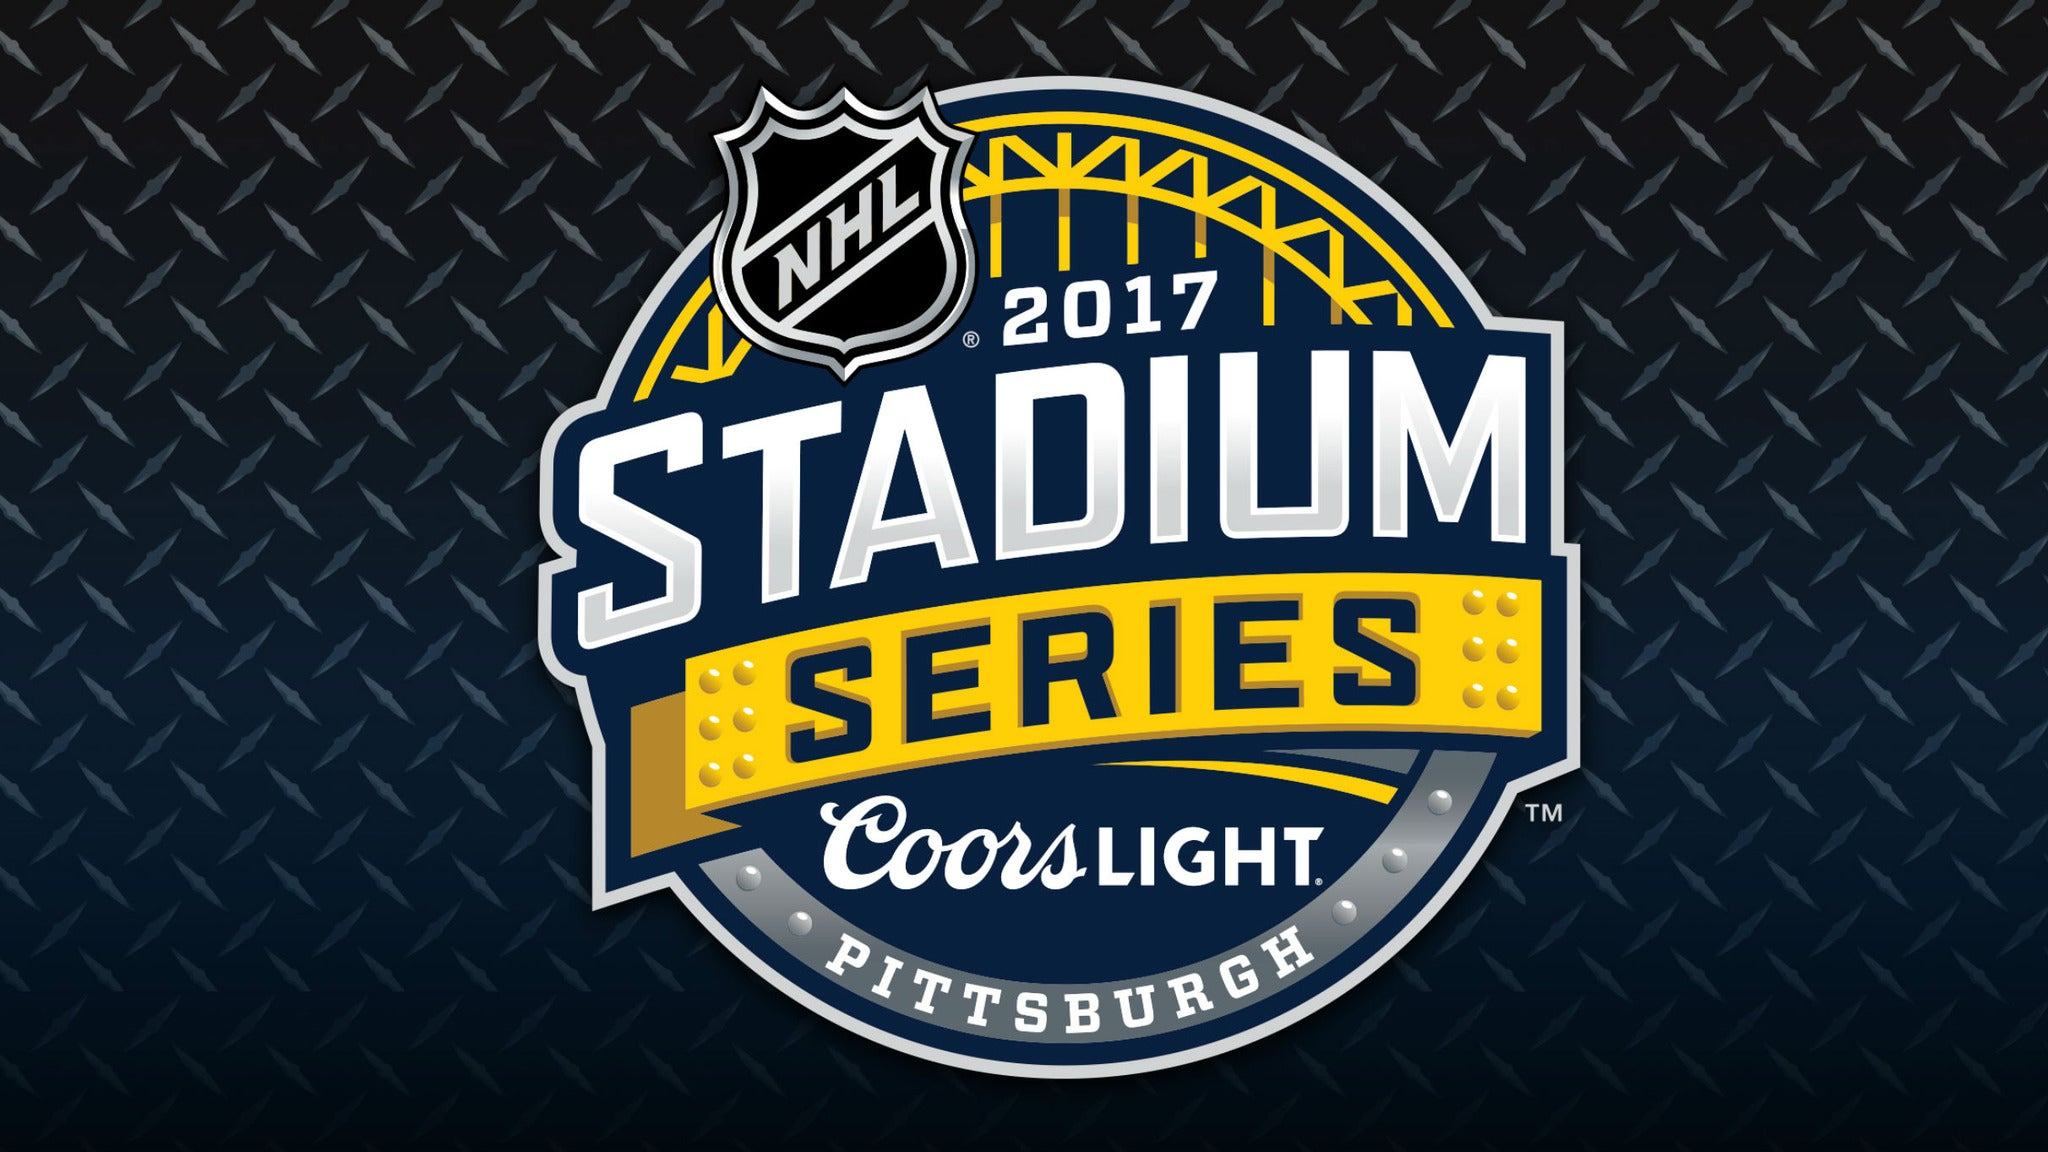 2017 Coors Light NHL Stadium Series - Flyers v Penguins